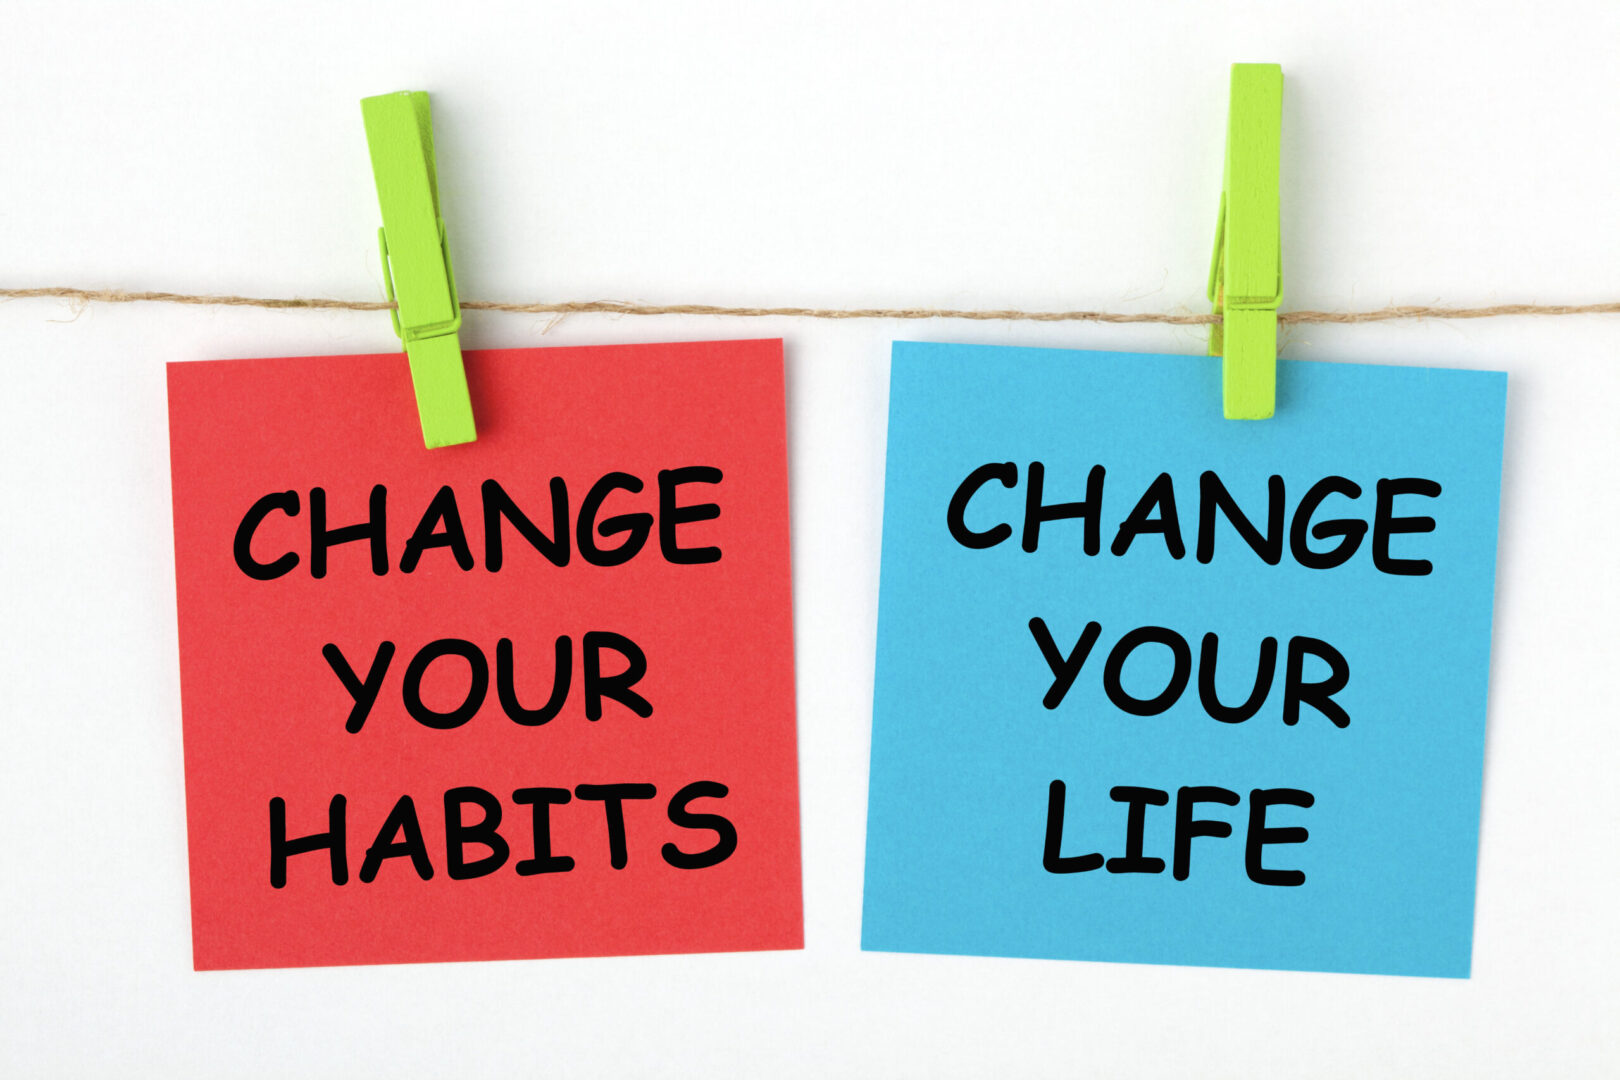 Change your Habits Change you Life post its on a clothes hanger